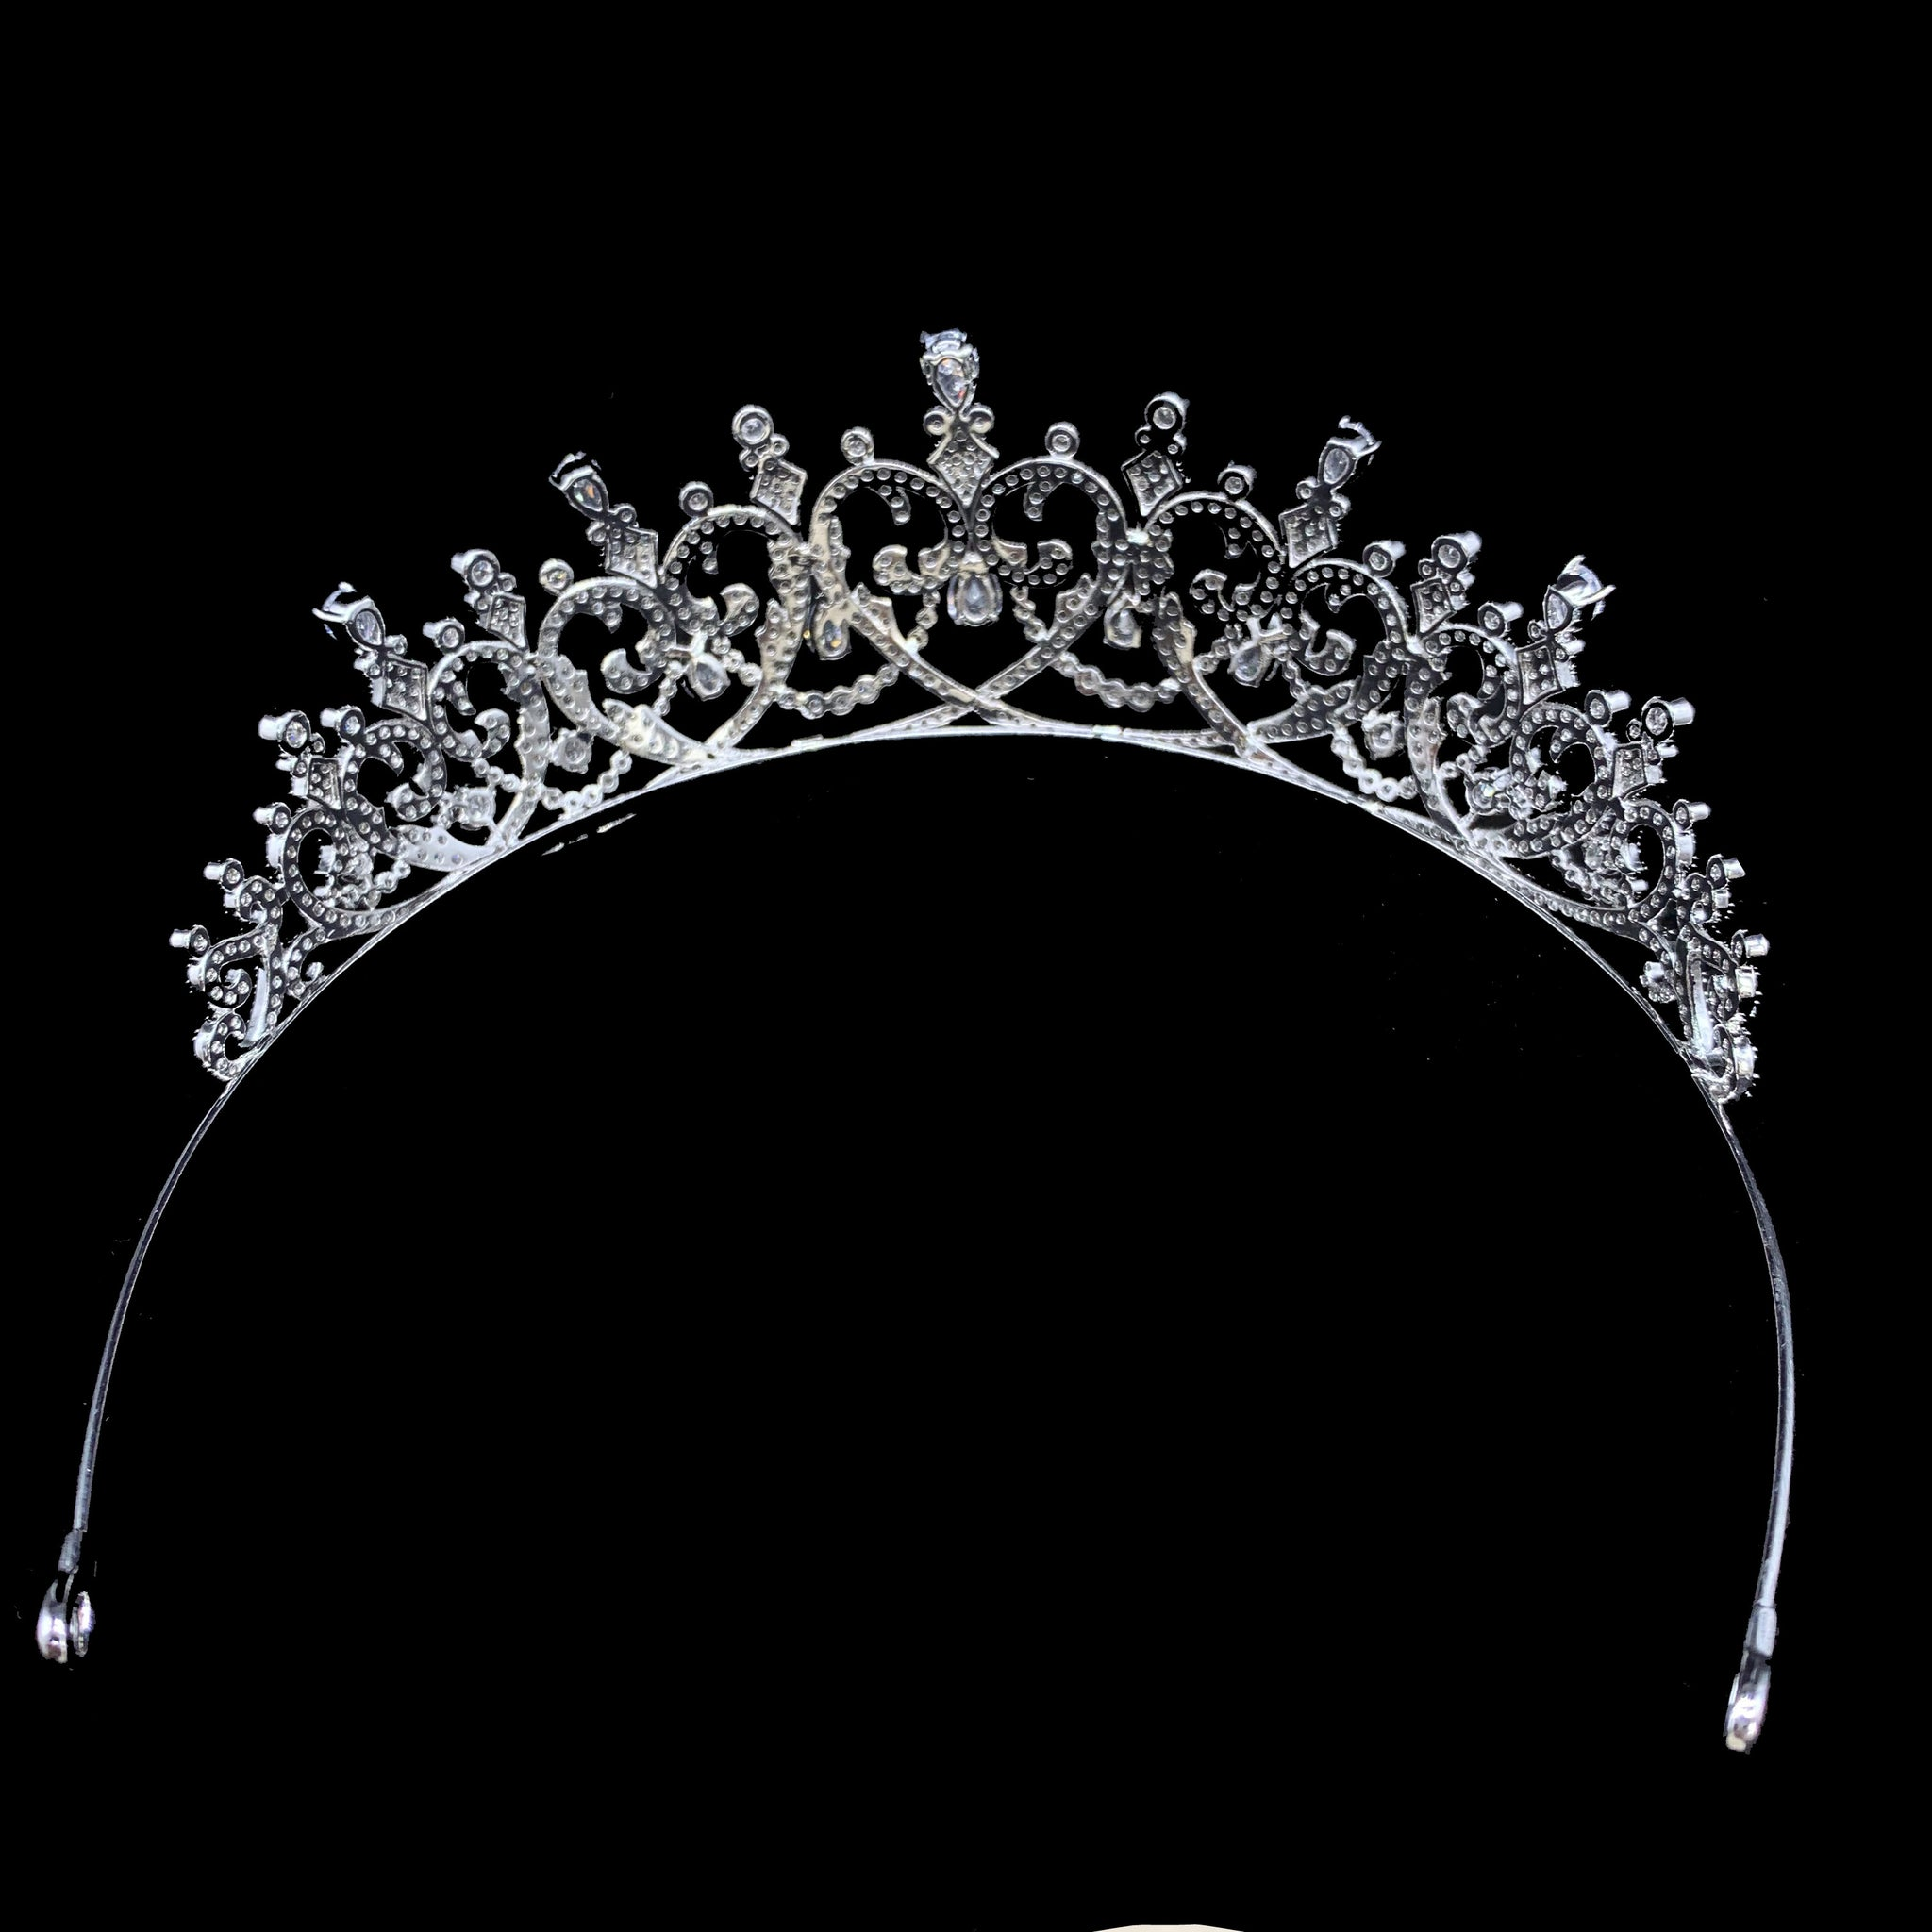 'Victoria Melita' Heart Tiara - The Royal Look For Less